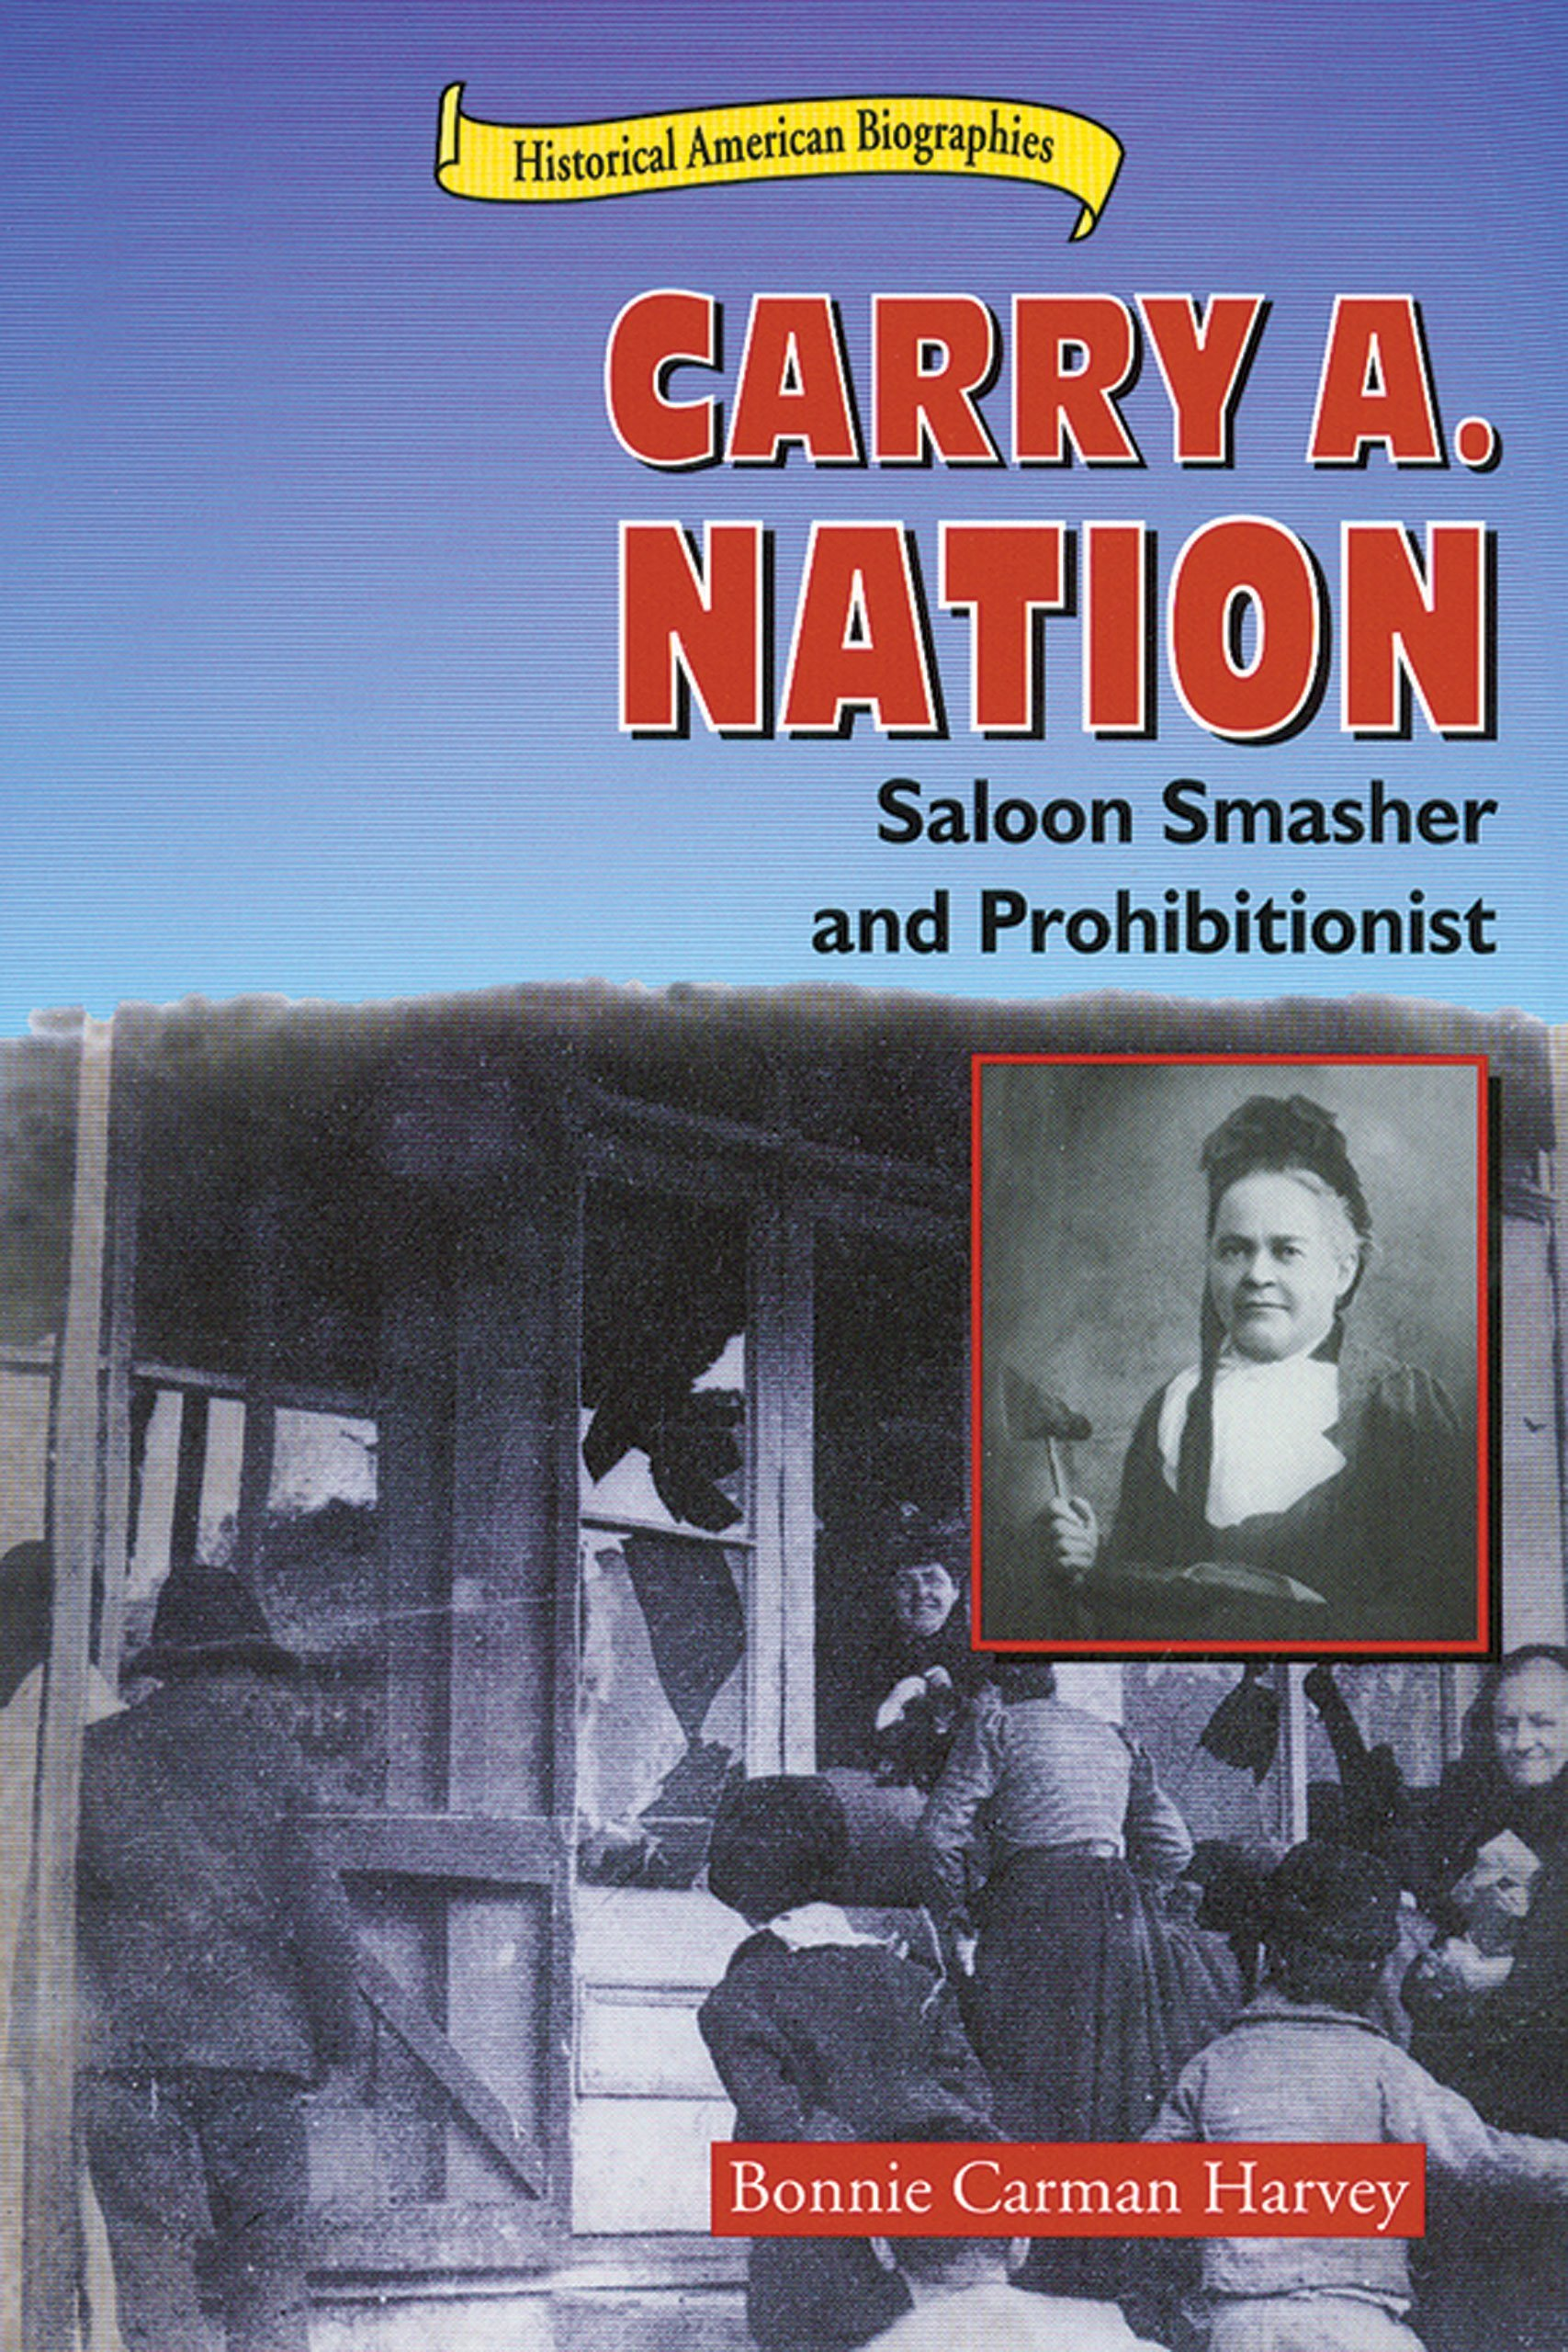 Carry A. Nation: Saloon Smasher and Prohibitionist (Historical American Biographies) pdf epub